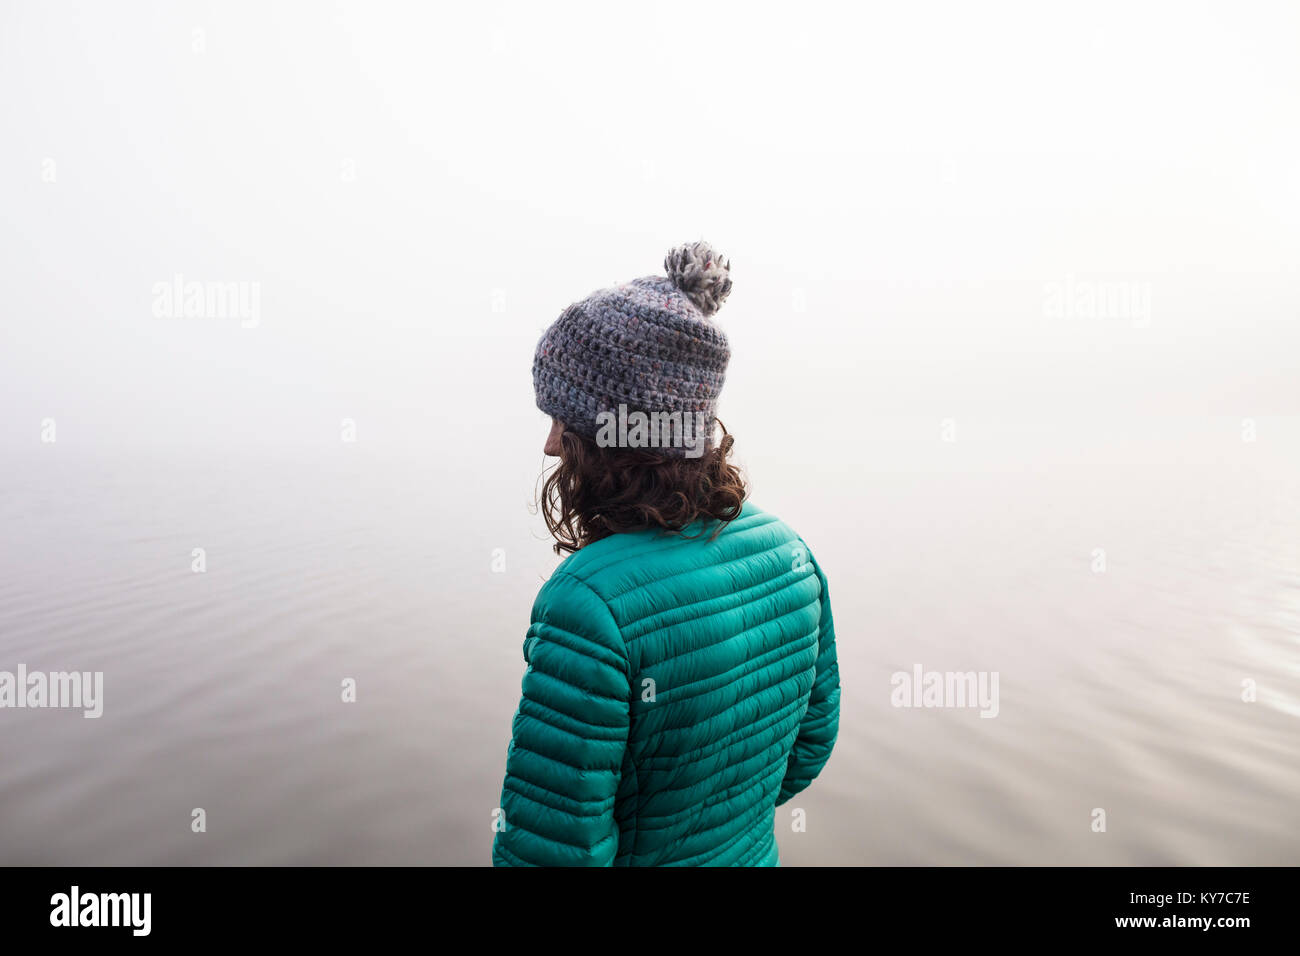 MAYNOOTH, ONTARIO, CANADA - October 18, 2017: A lady looks at a foggy lake in the autumn. - Stock Image